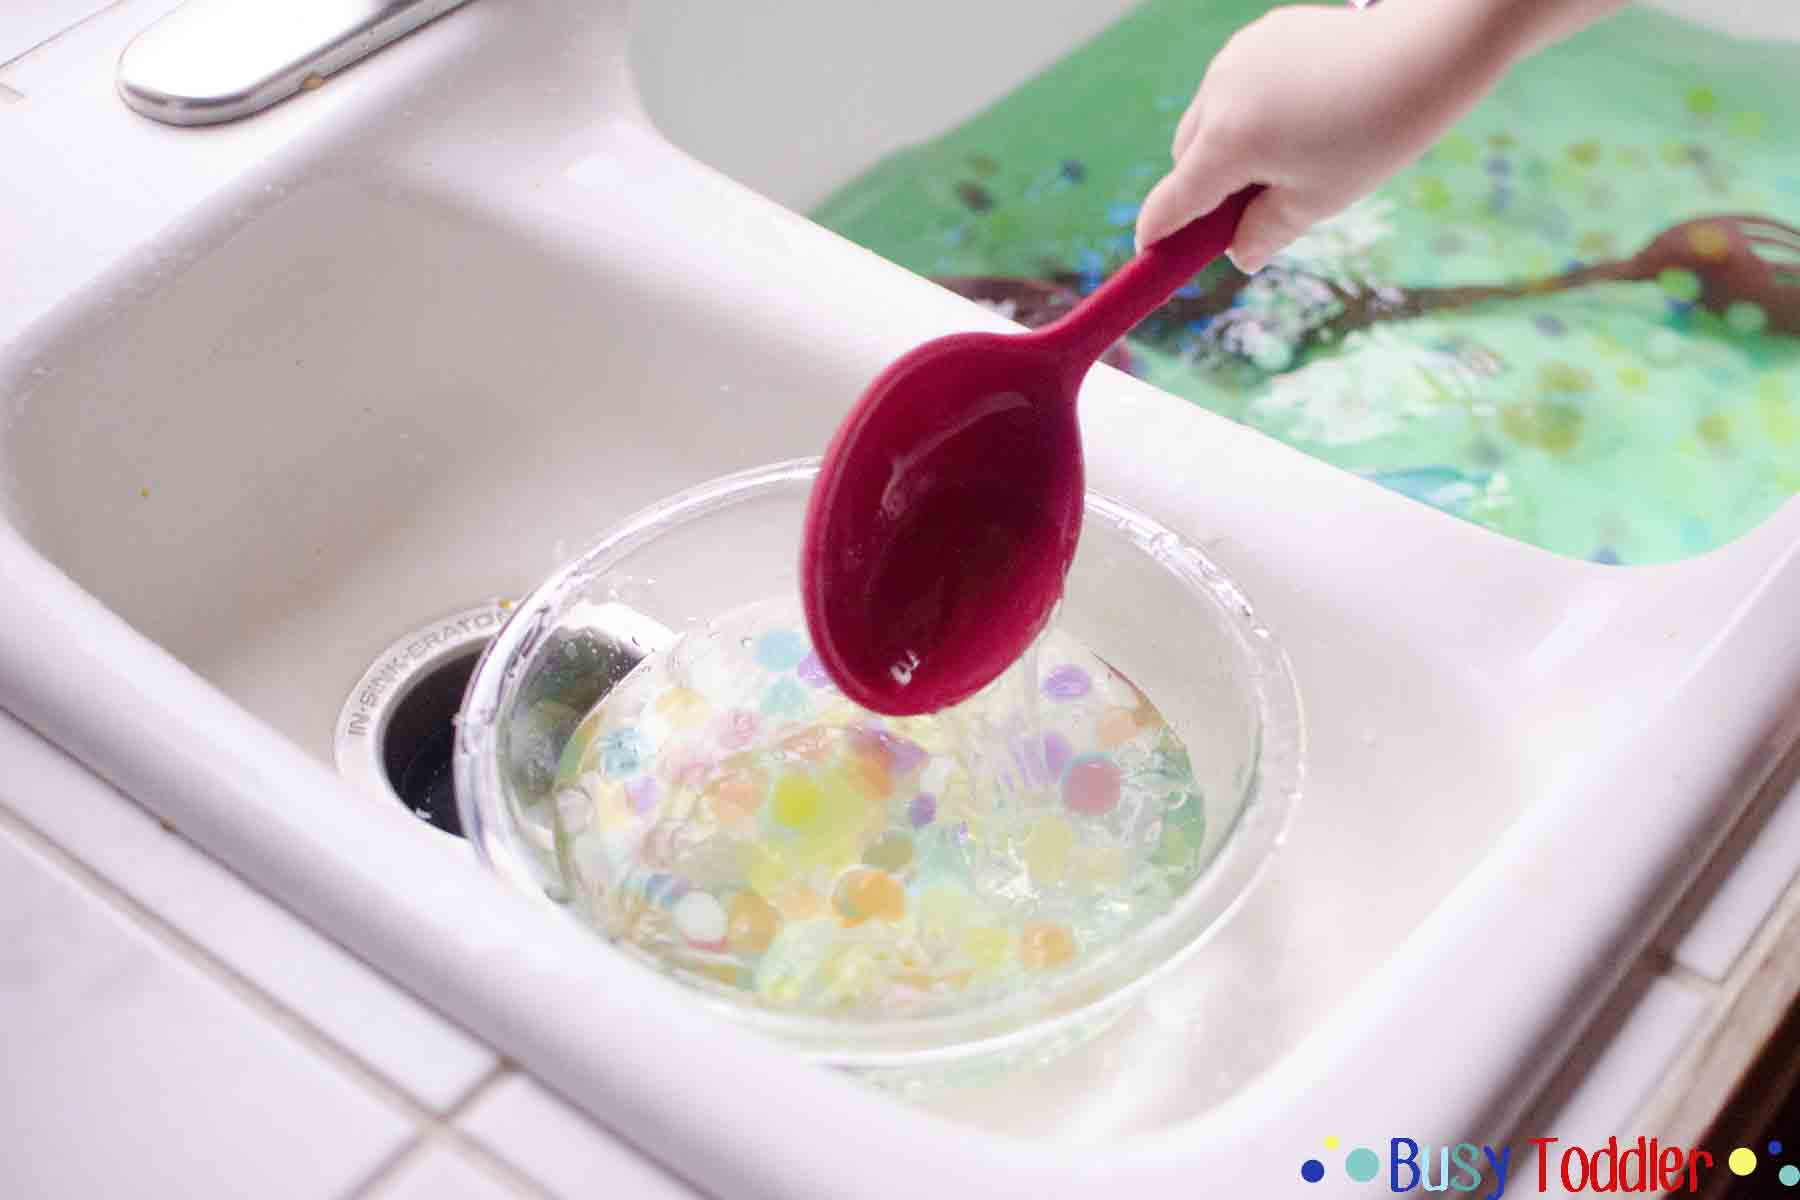 WATER BEADS SCOOP AND TRANSFER: A fun toddler activity using water beads